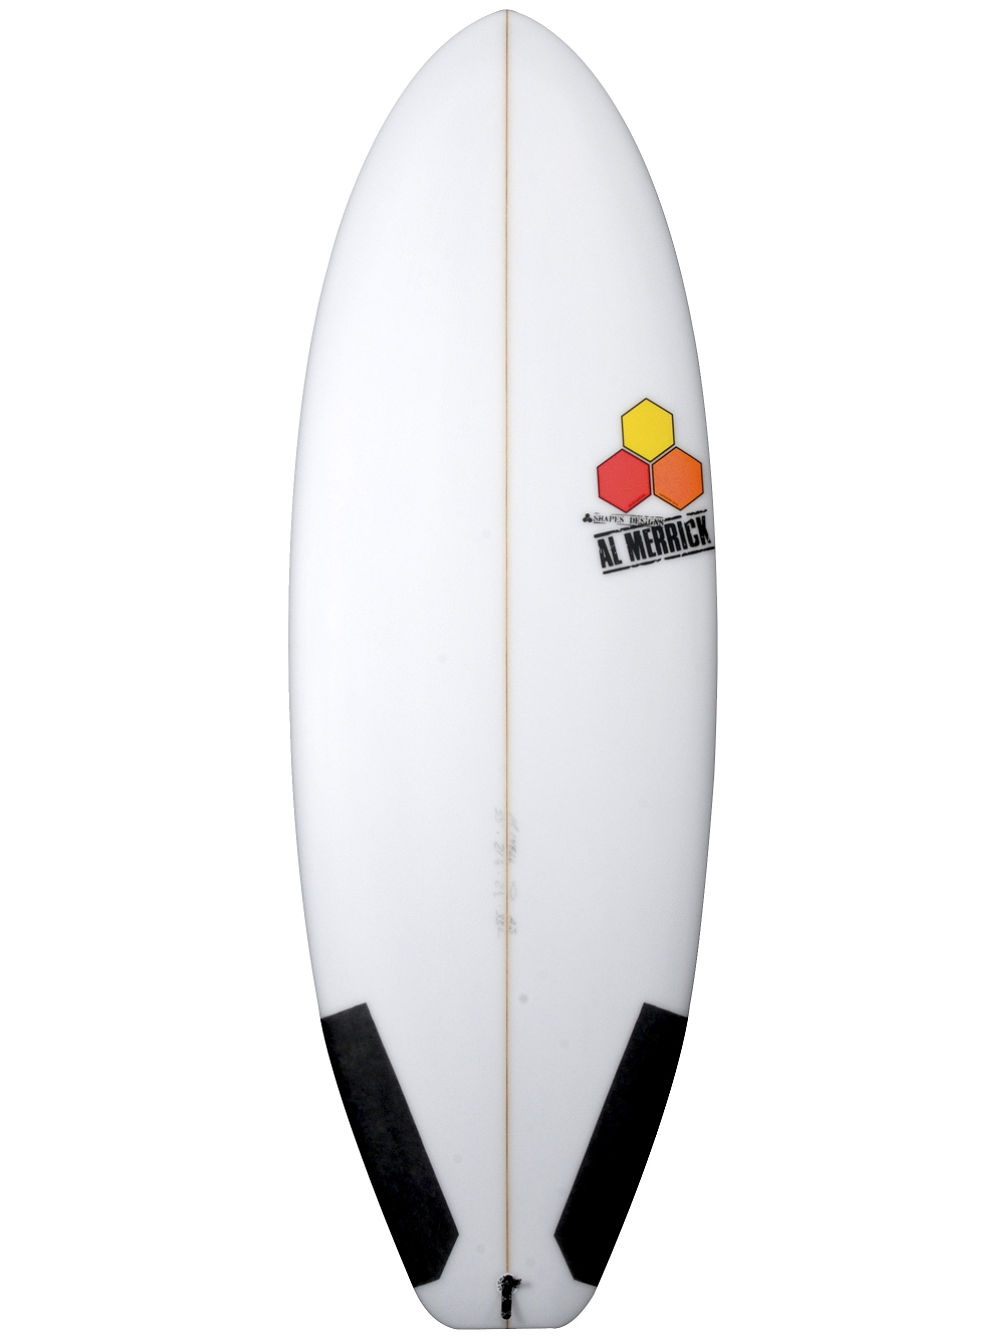 Av Joe 5'3 Surfboard